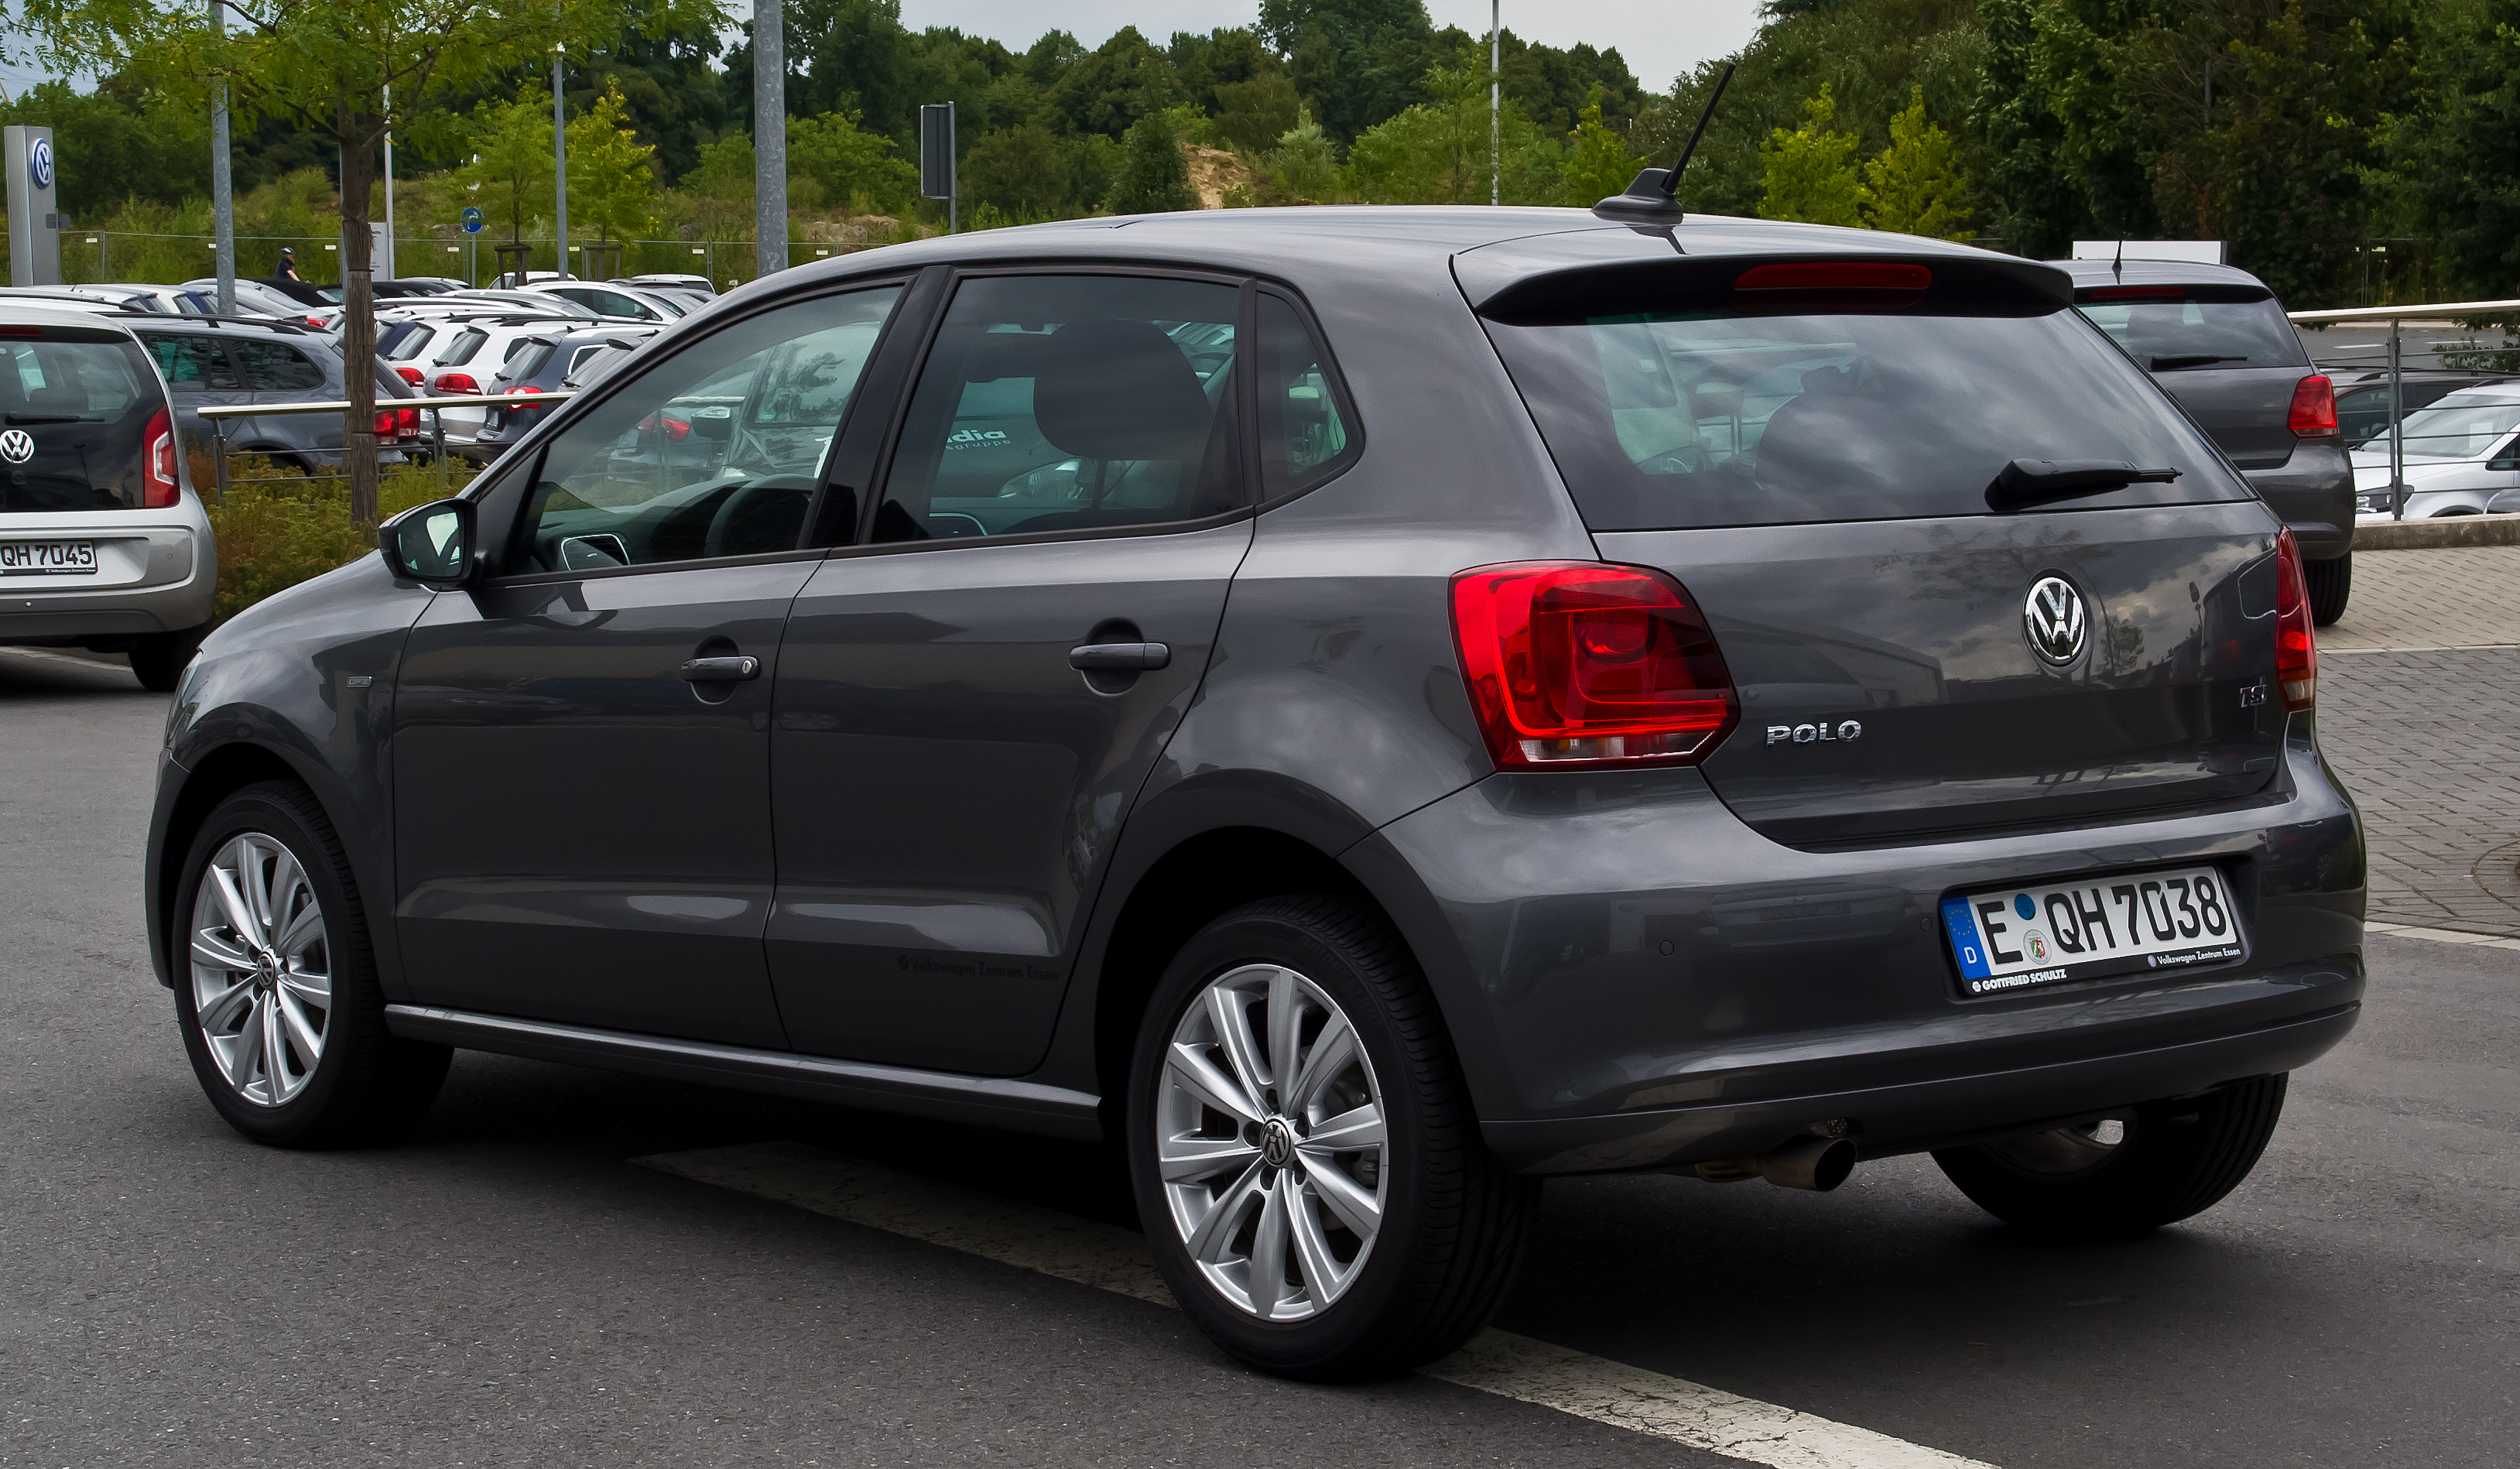 file vw polo 1 2 tsi life v heckansicht 11 august 2013 wikimedia commons. Black Bedroom Furniture Sets. Home Design Ideas